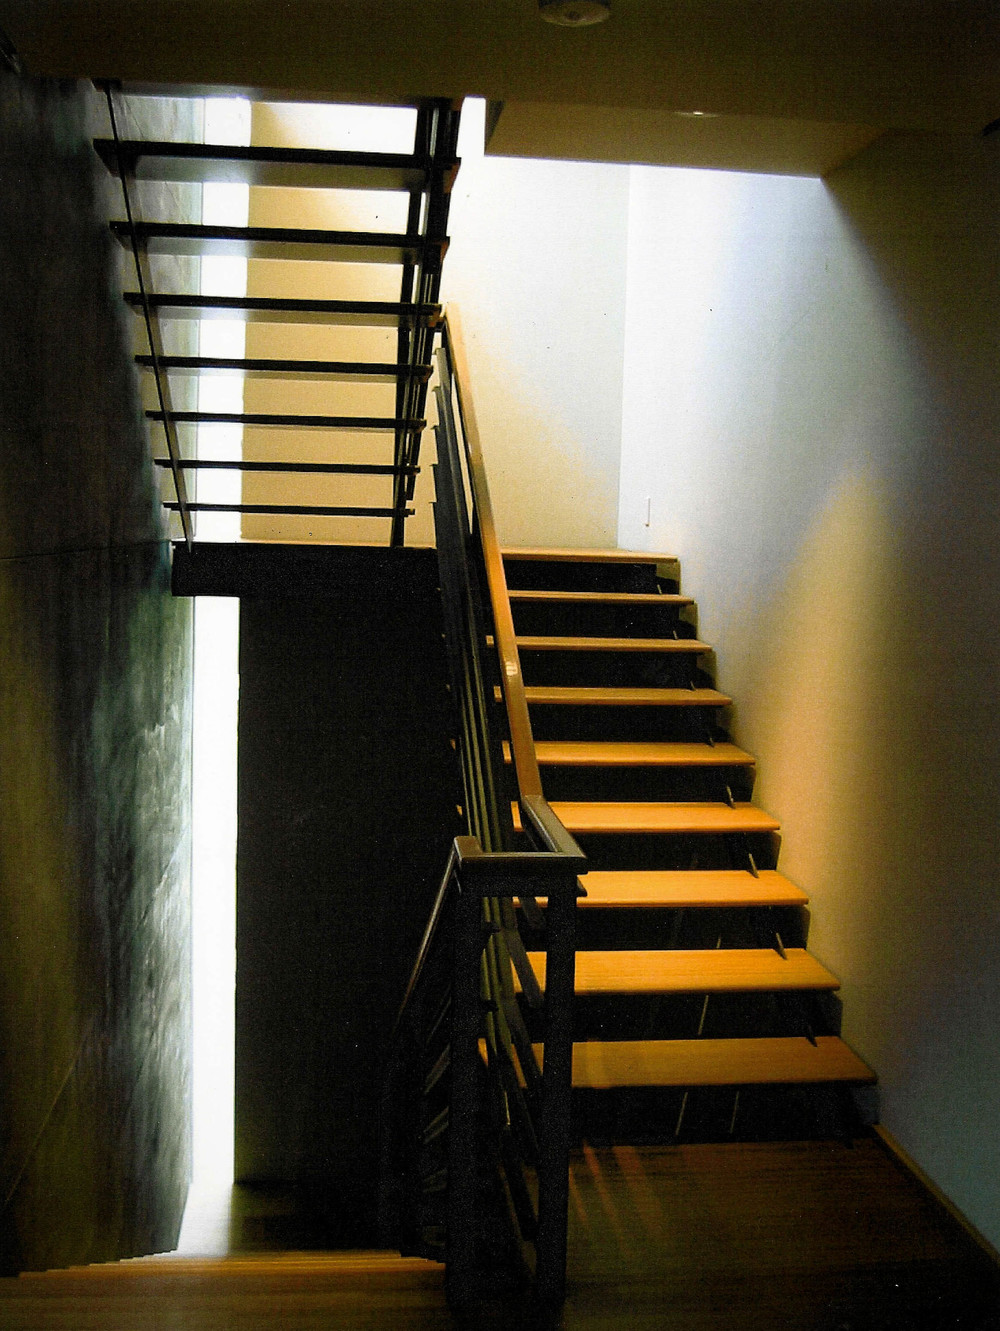 Recessed lighting was designed to light the step platform and to fill the stairwell with light from above.